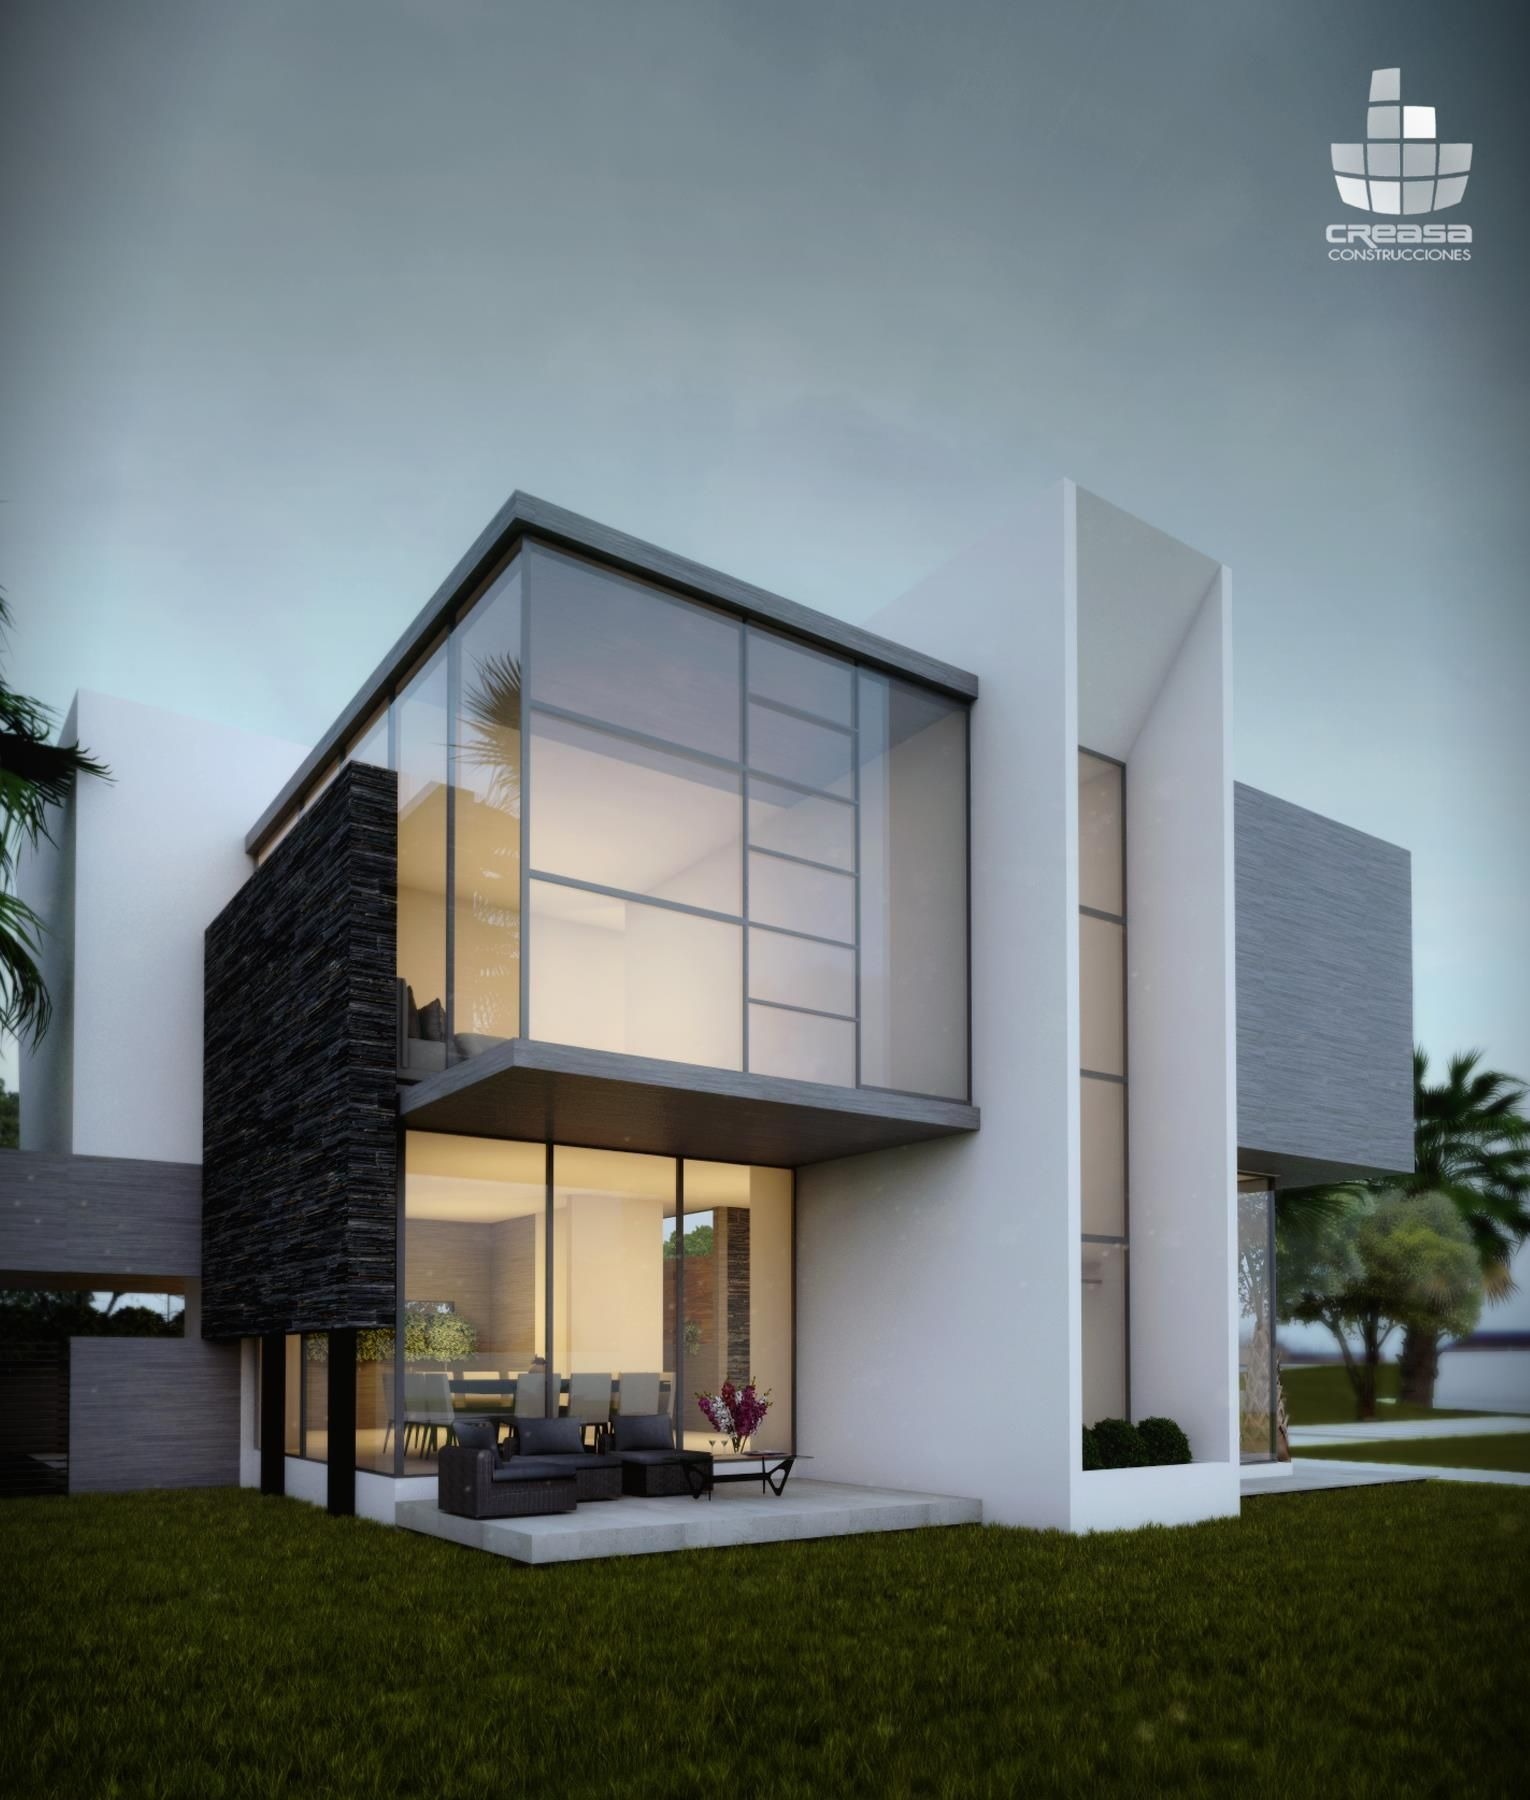 Creasa modern architecture pinterest villas house for Best modern architecture homes